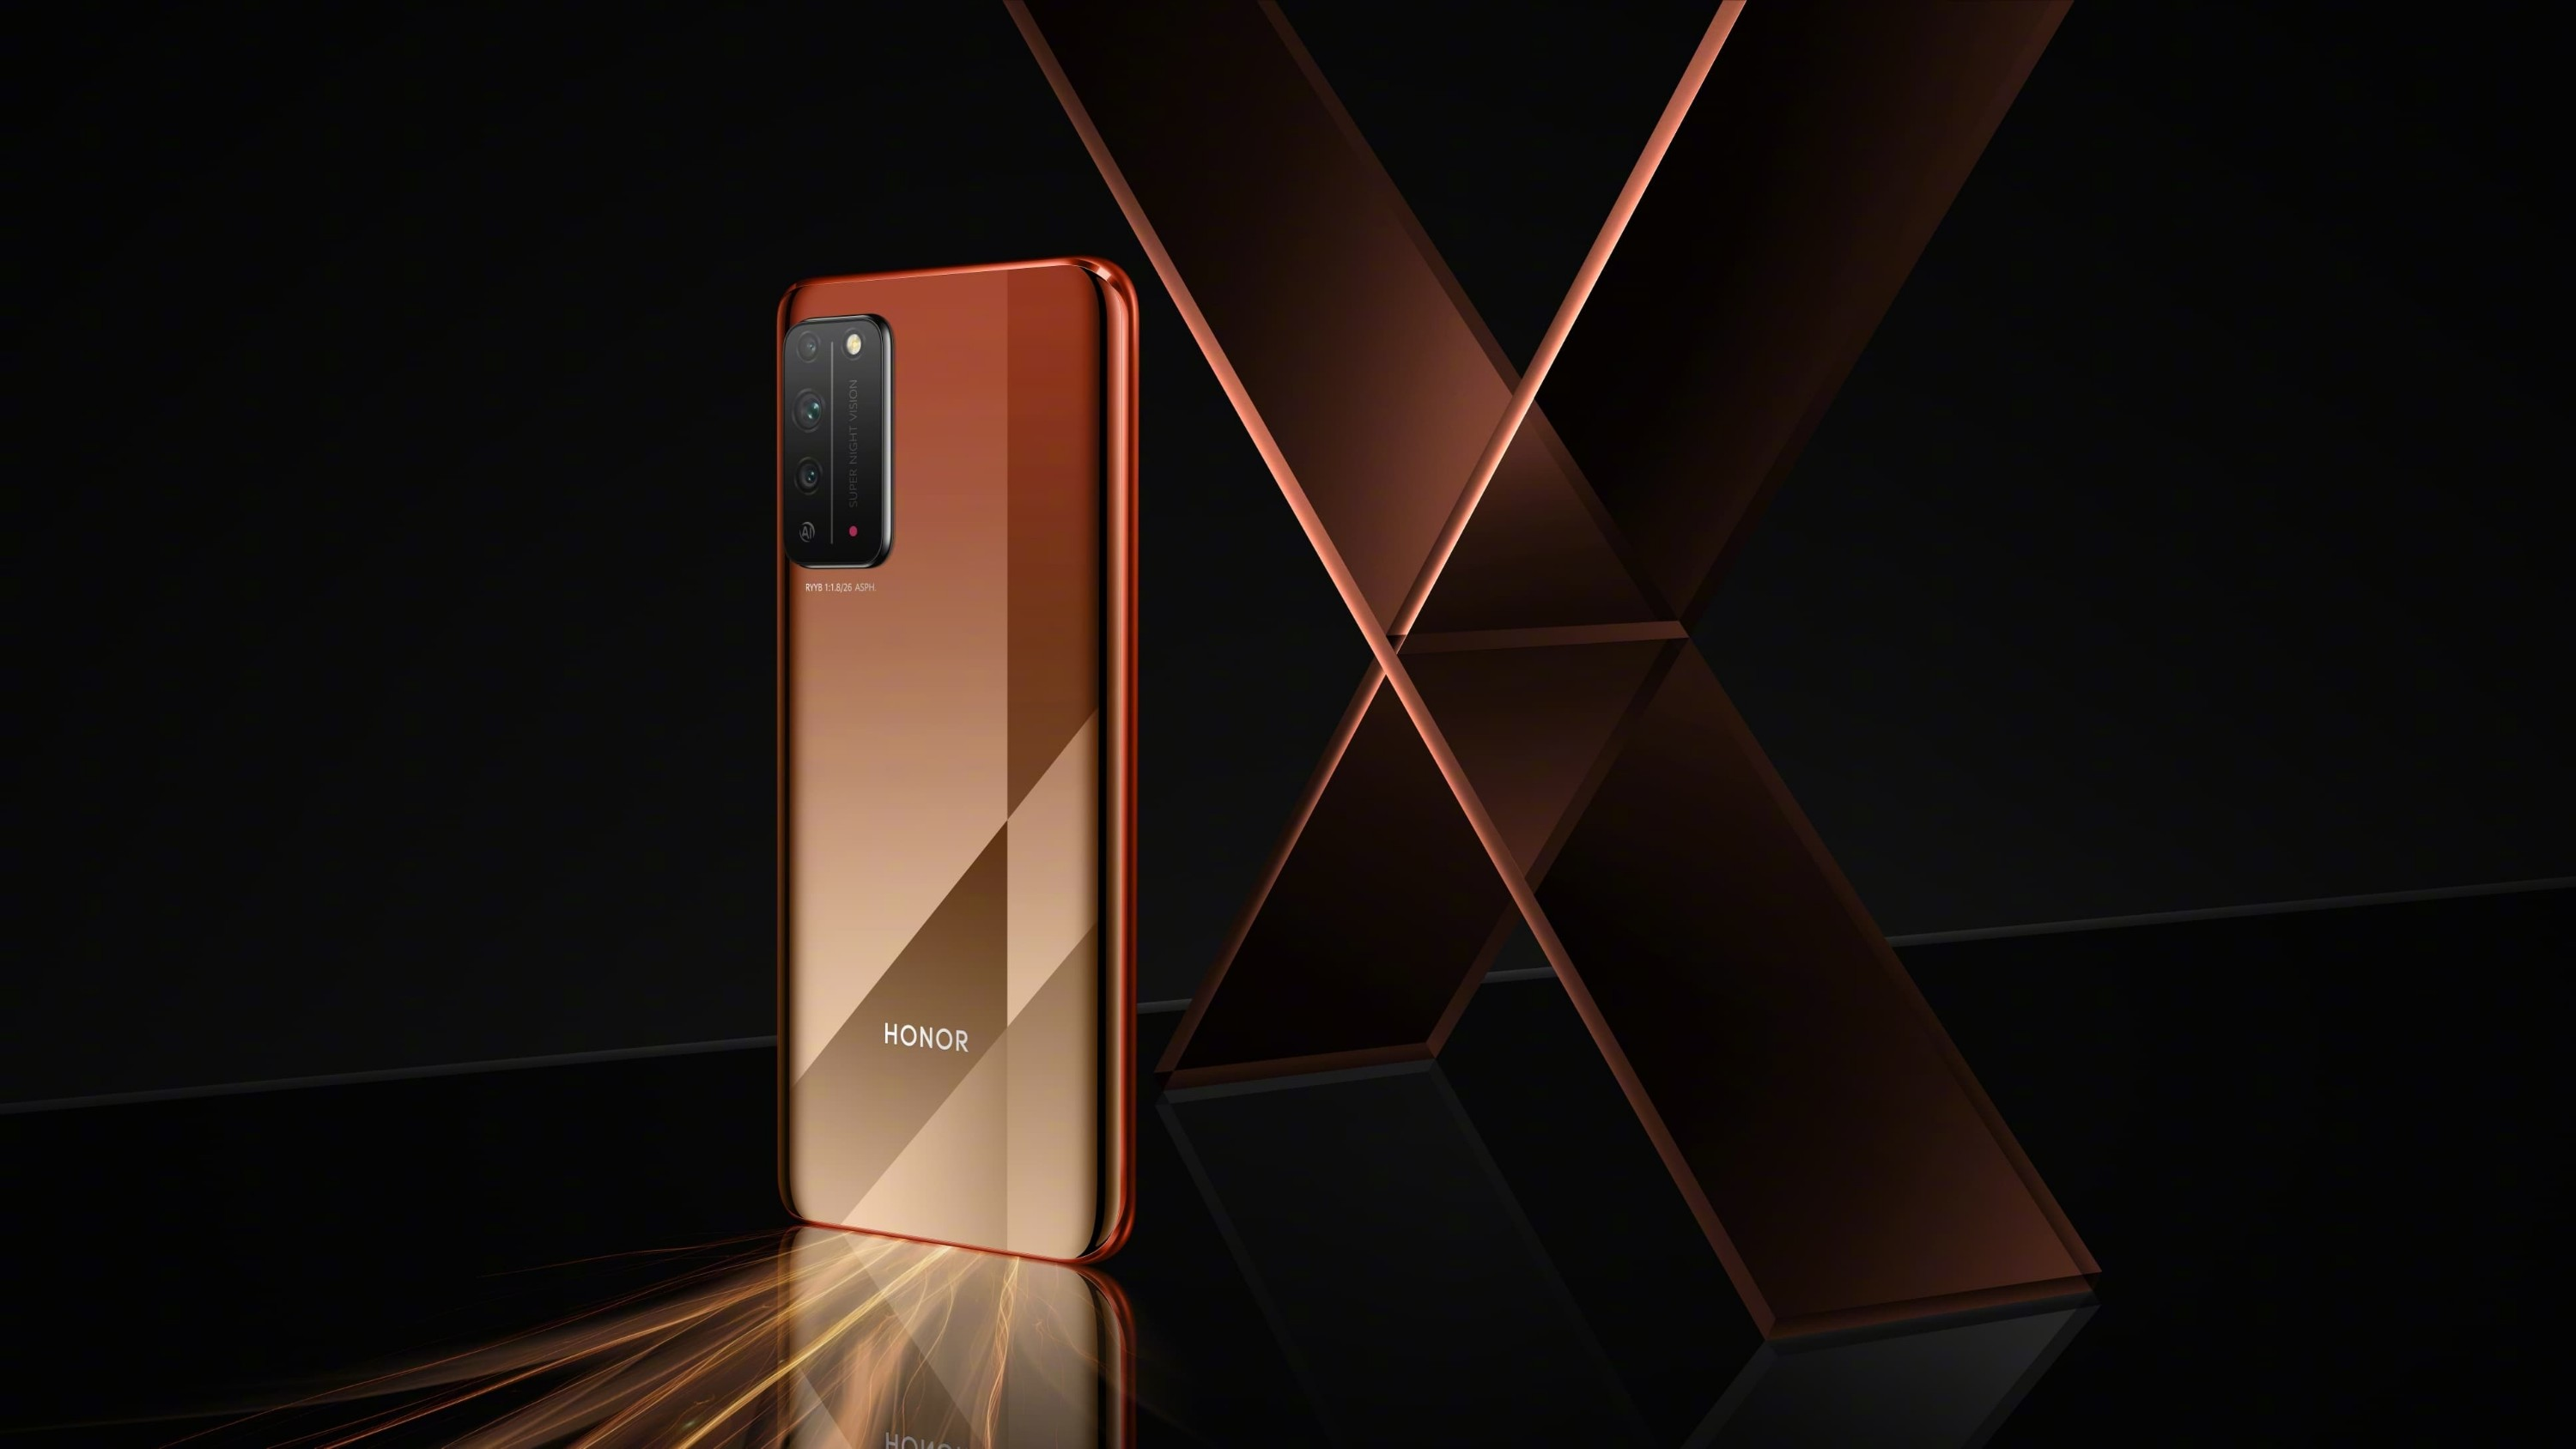 Honor X10 Orange, Honor X10 Price